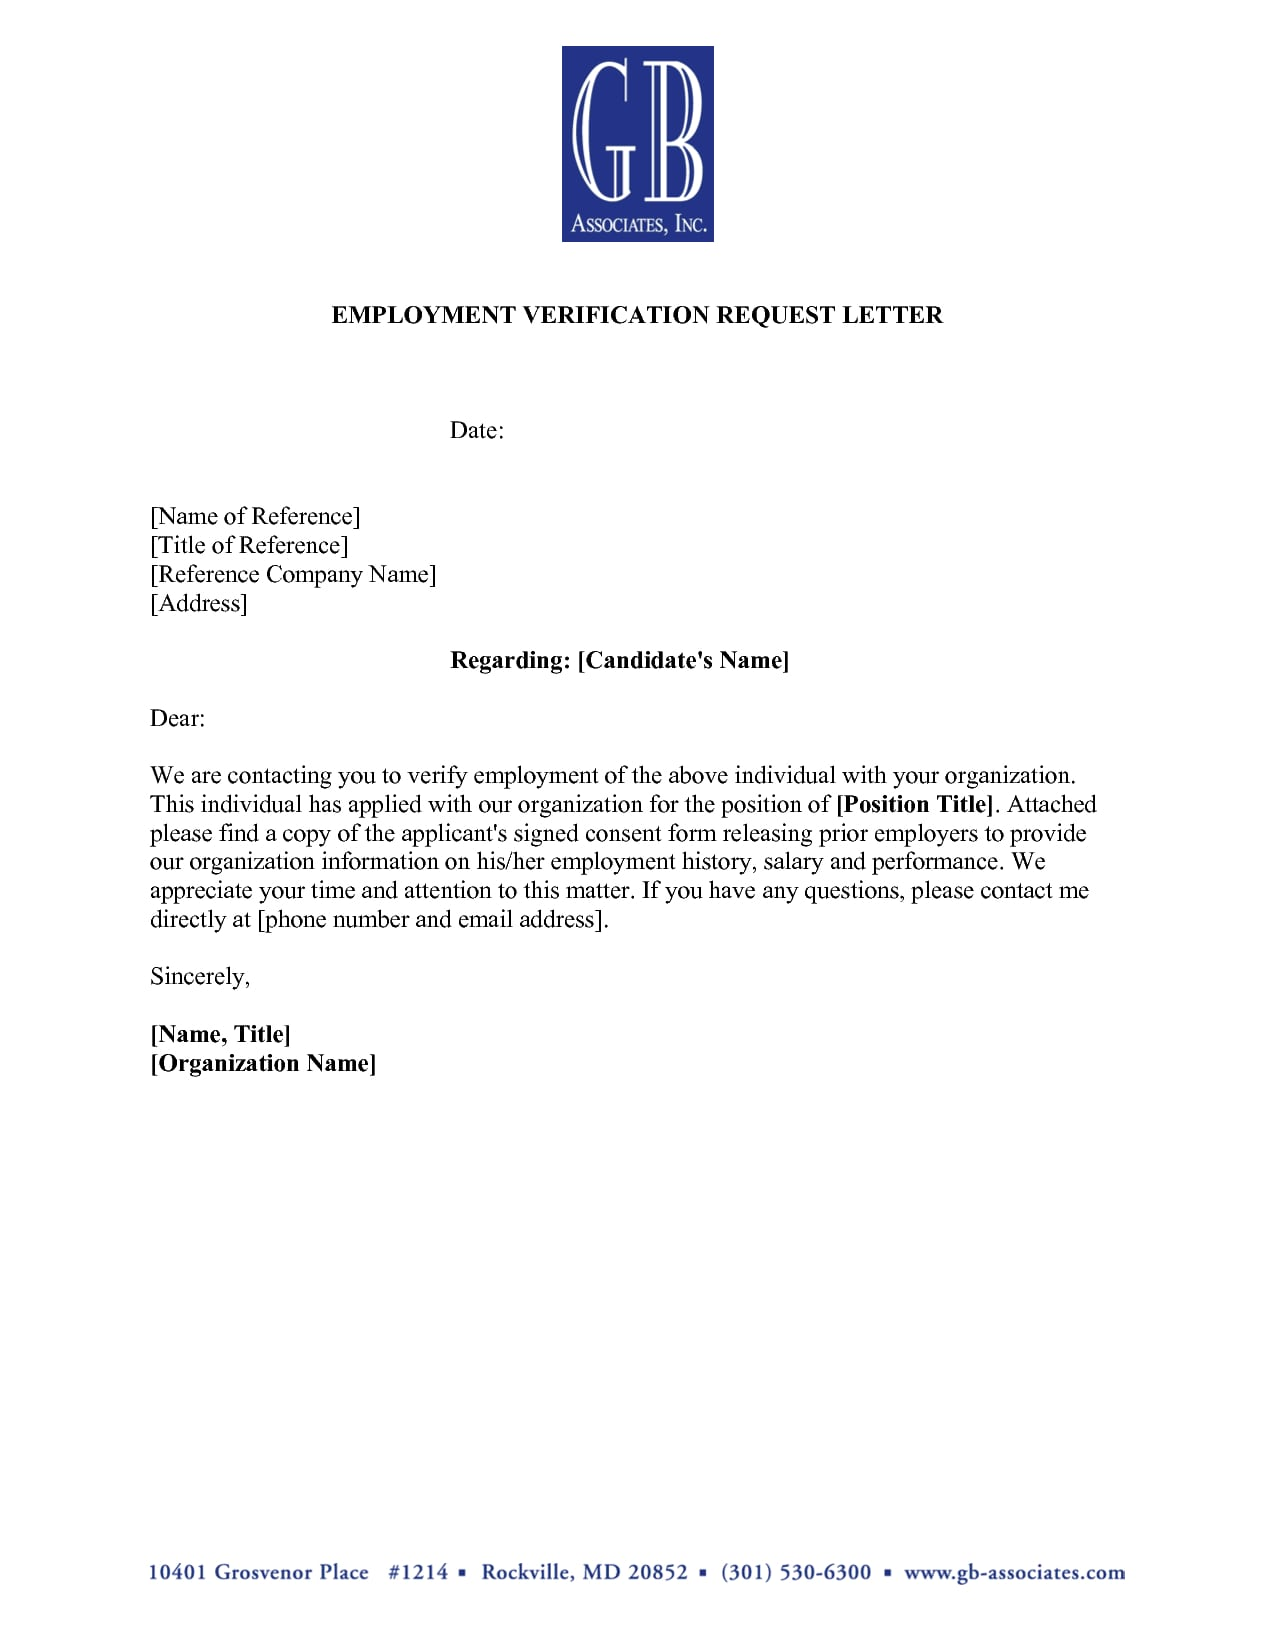 application employment verification letter example